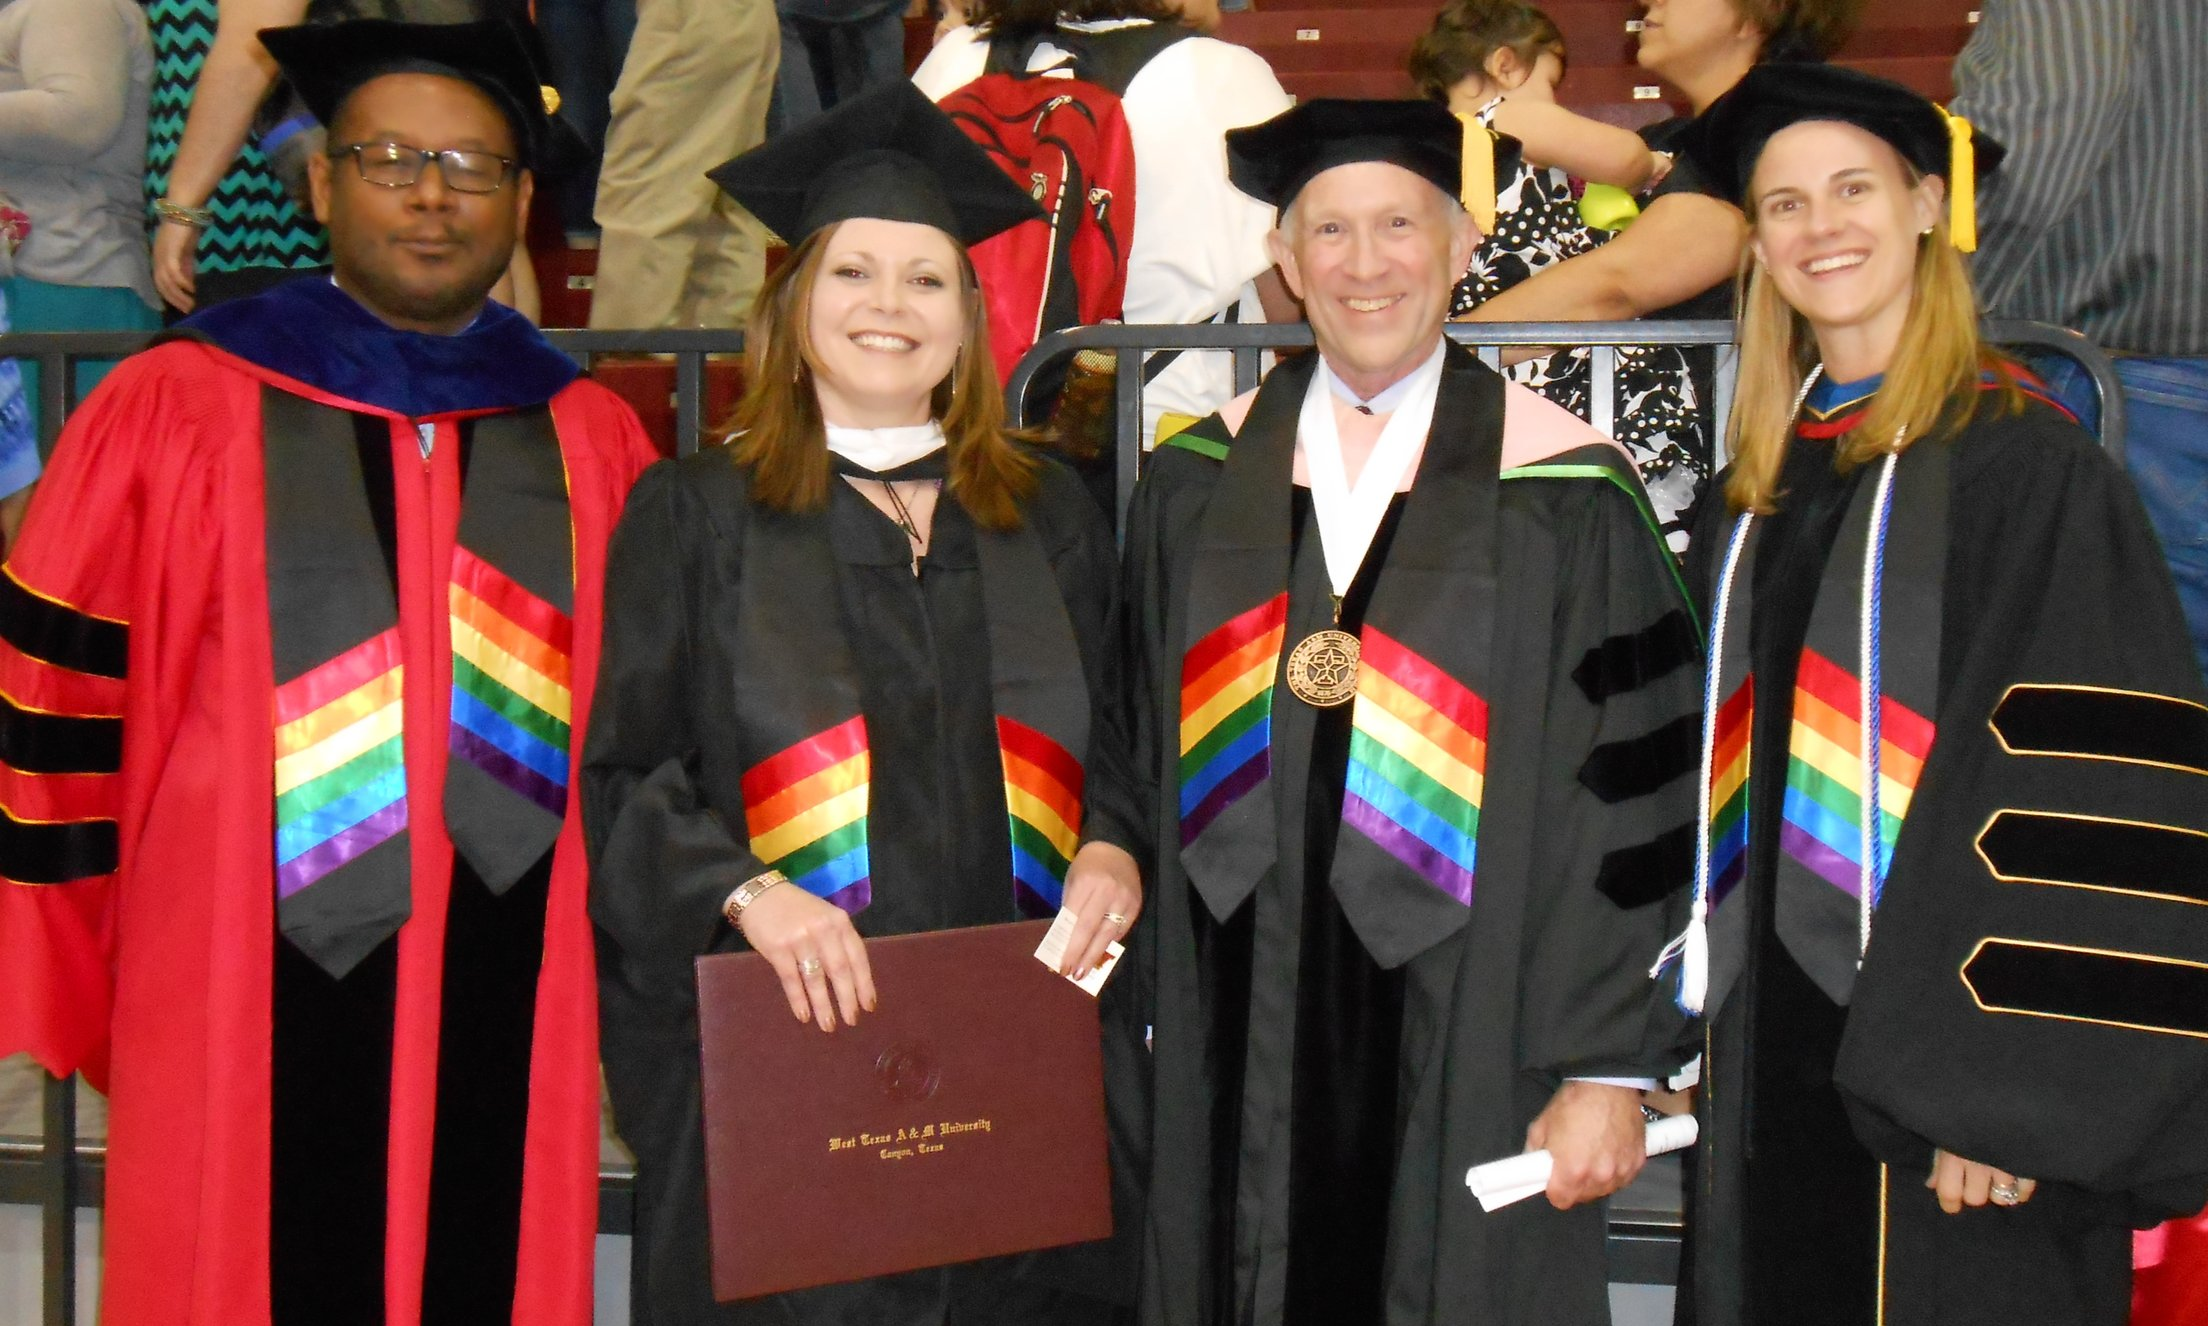 COESS buff allies in rainbow stoles at May 2015 graduation